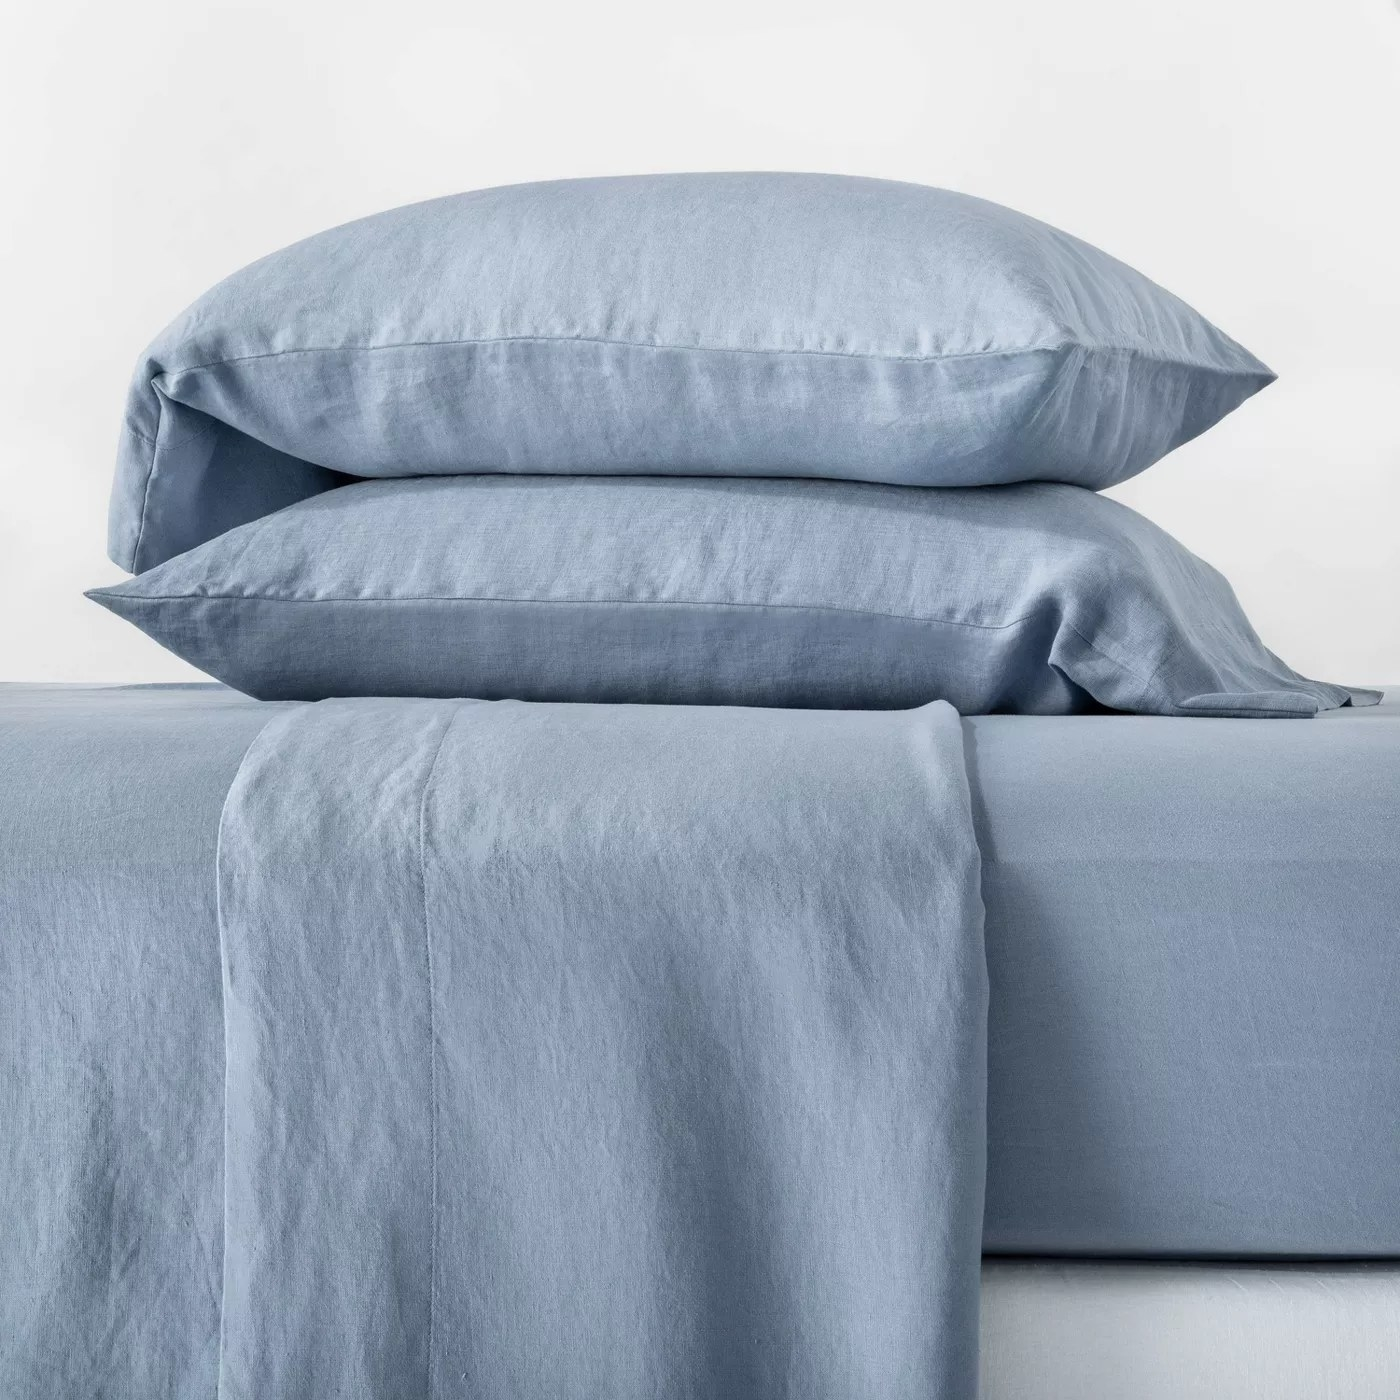 The sheet set in blue